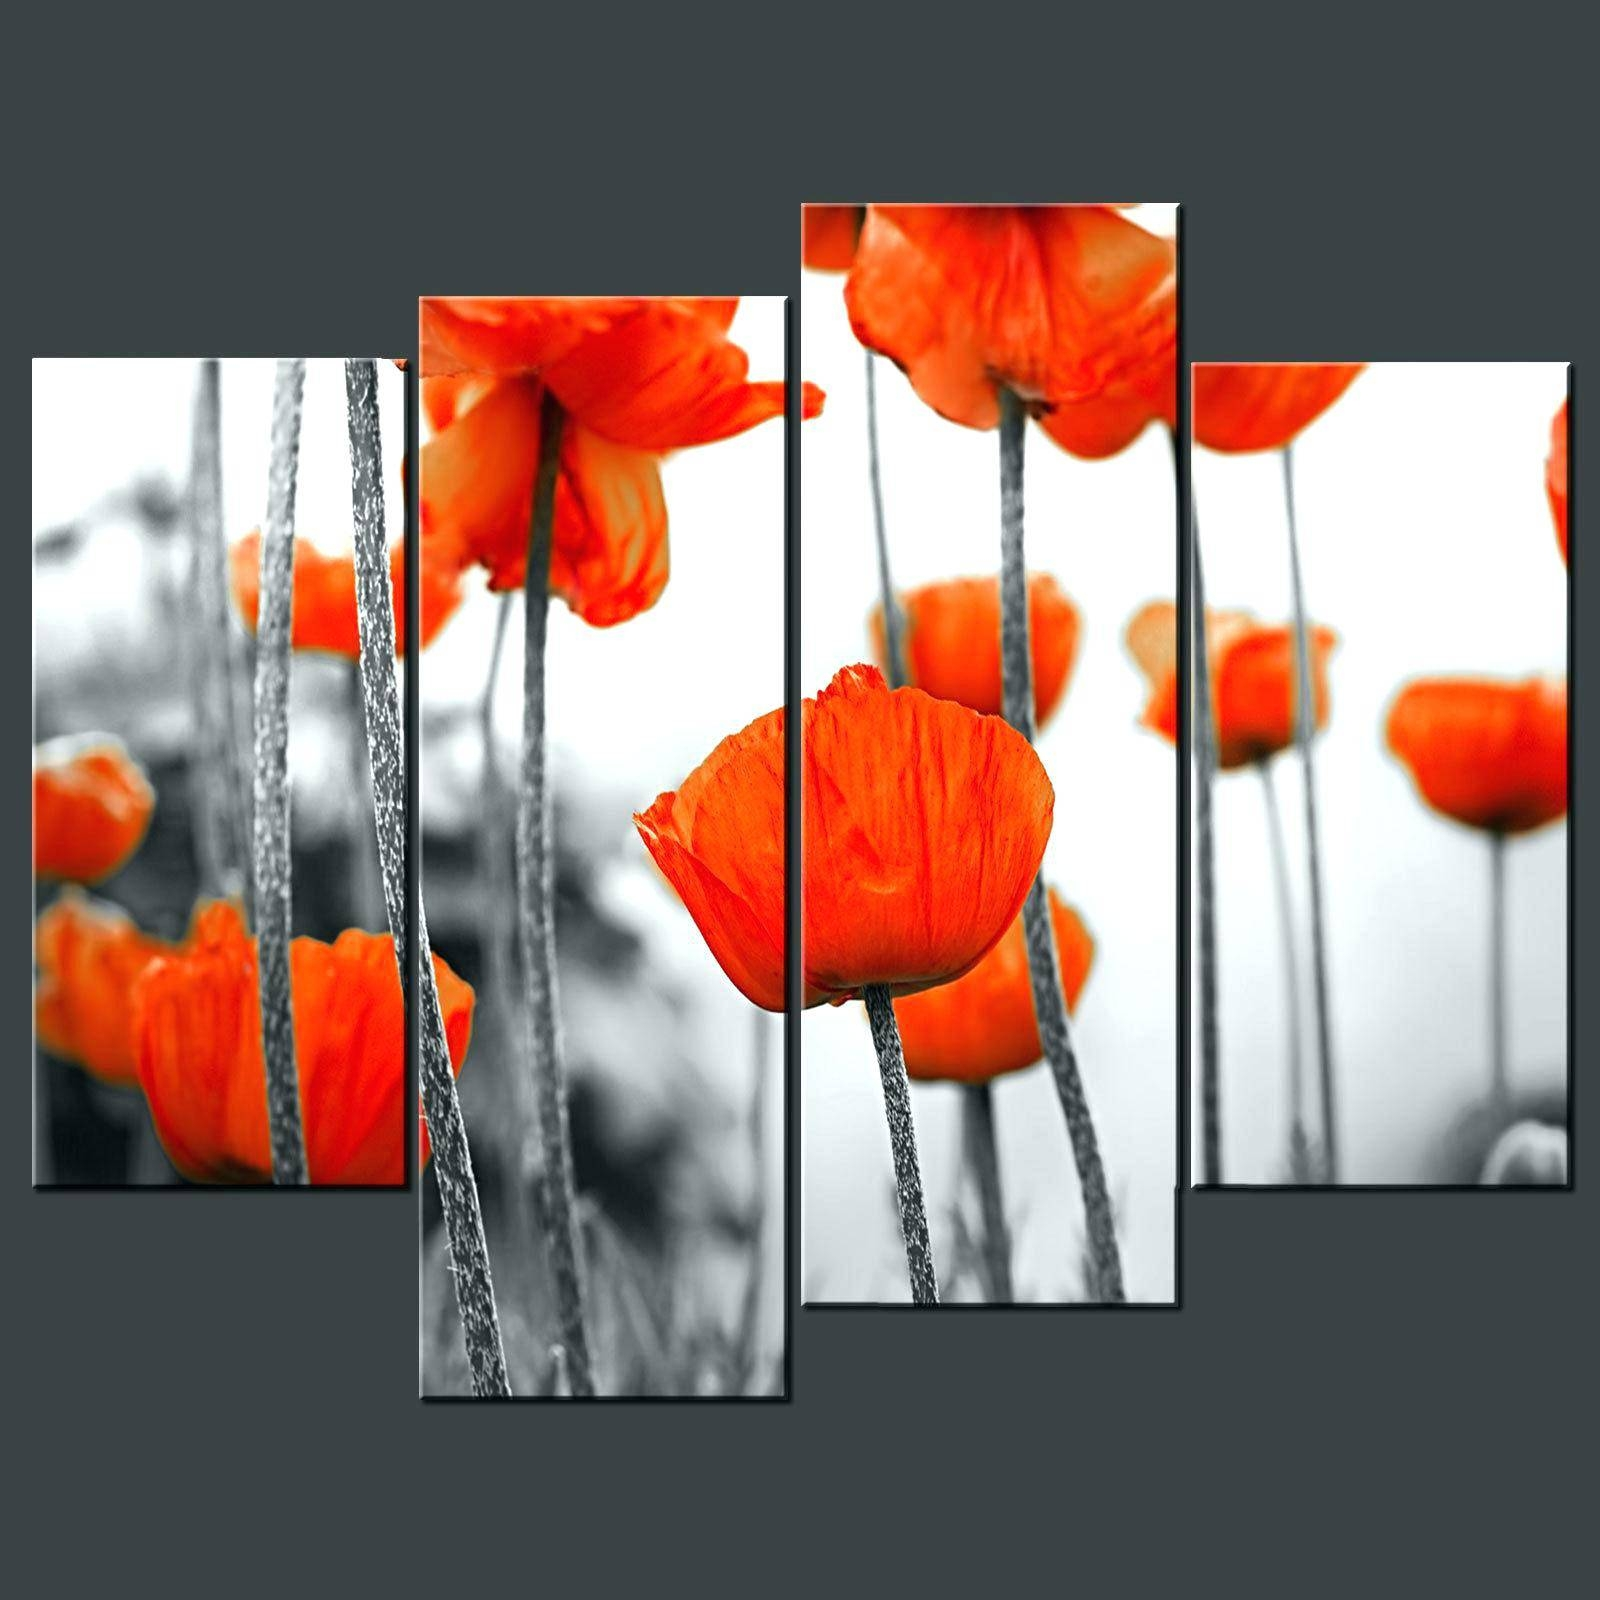 Wall Decor : 106 Red Flower 3 Piece Canvas Painting Wall Art Set Intended For 2017 Red Poppy Canvas Wall Art (View 19 of 20)